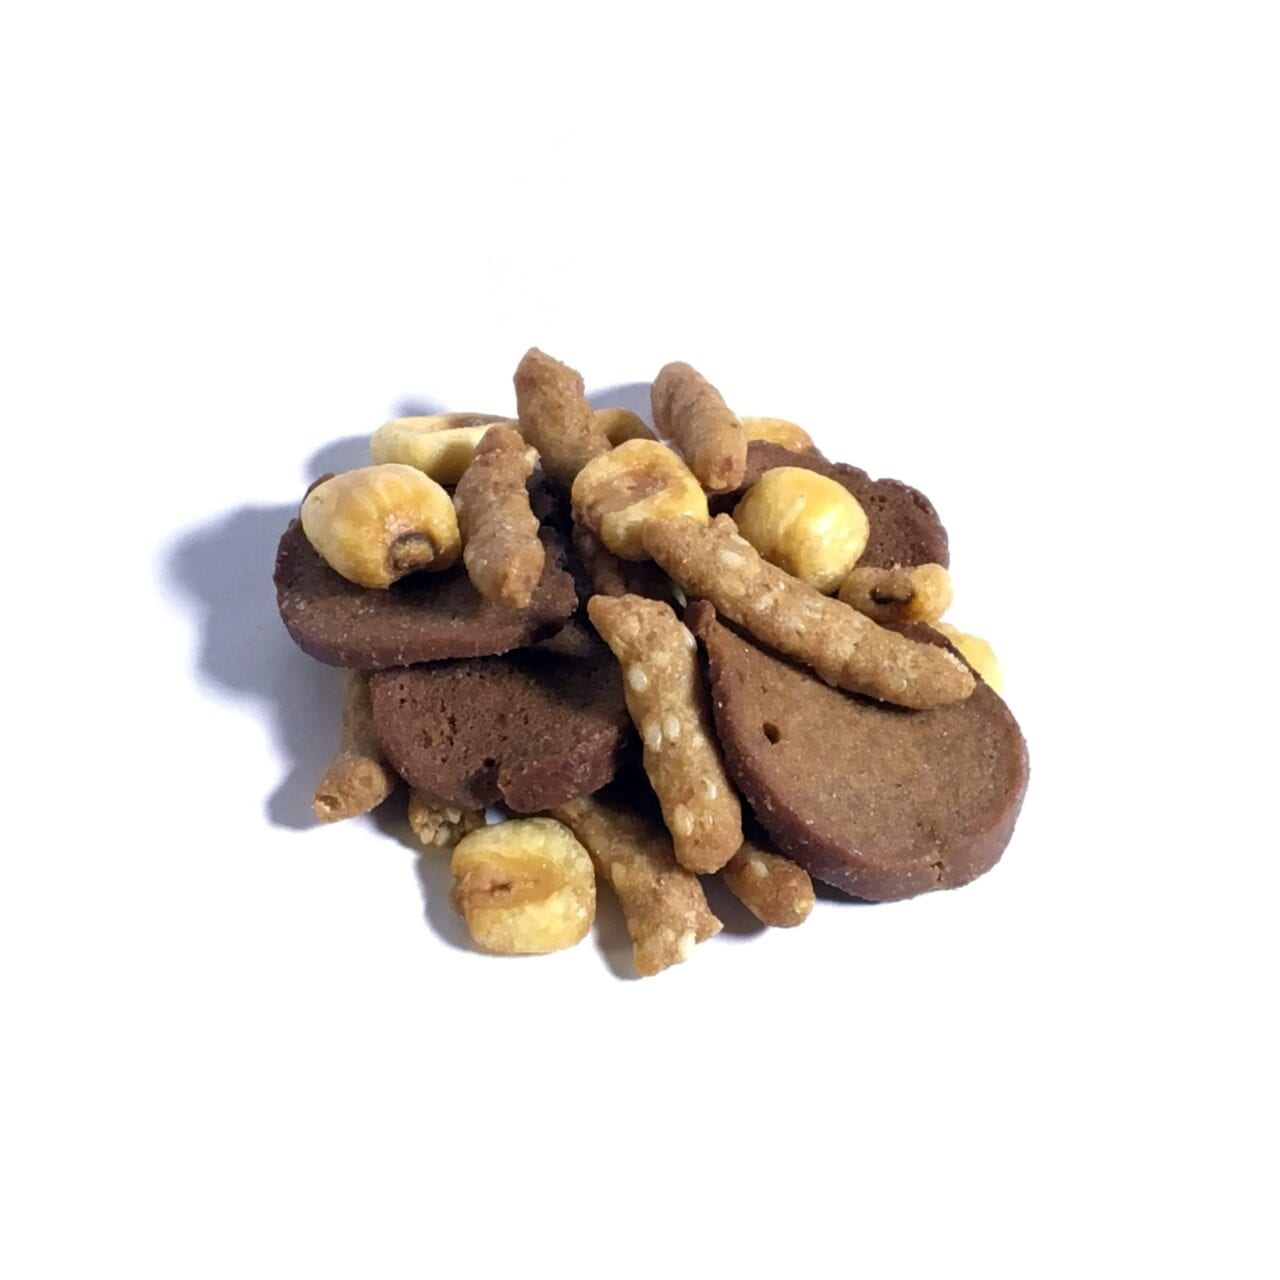 A pile of GORP trail mix including corn and chips.